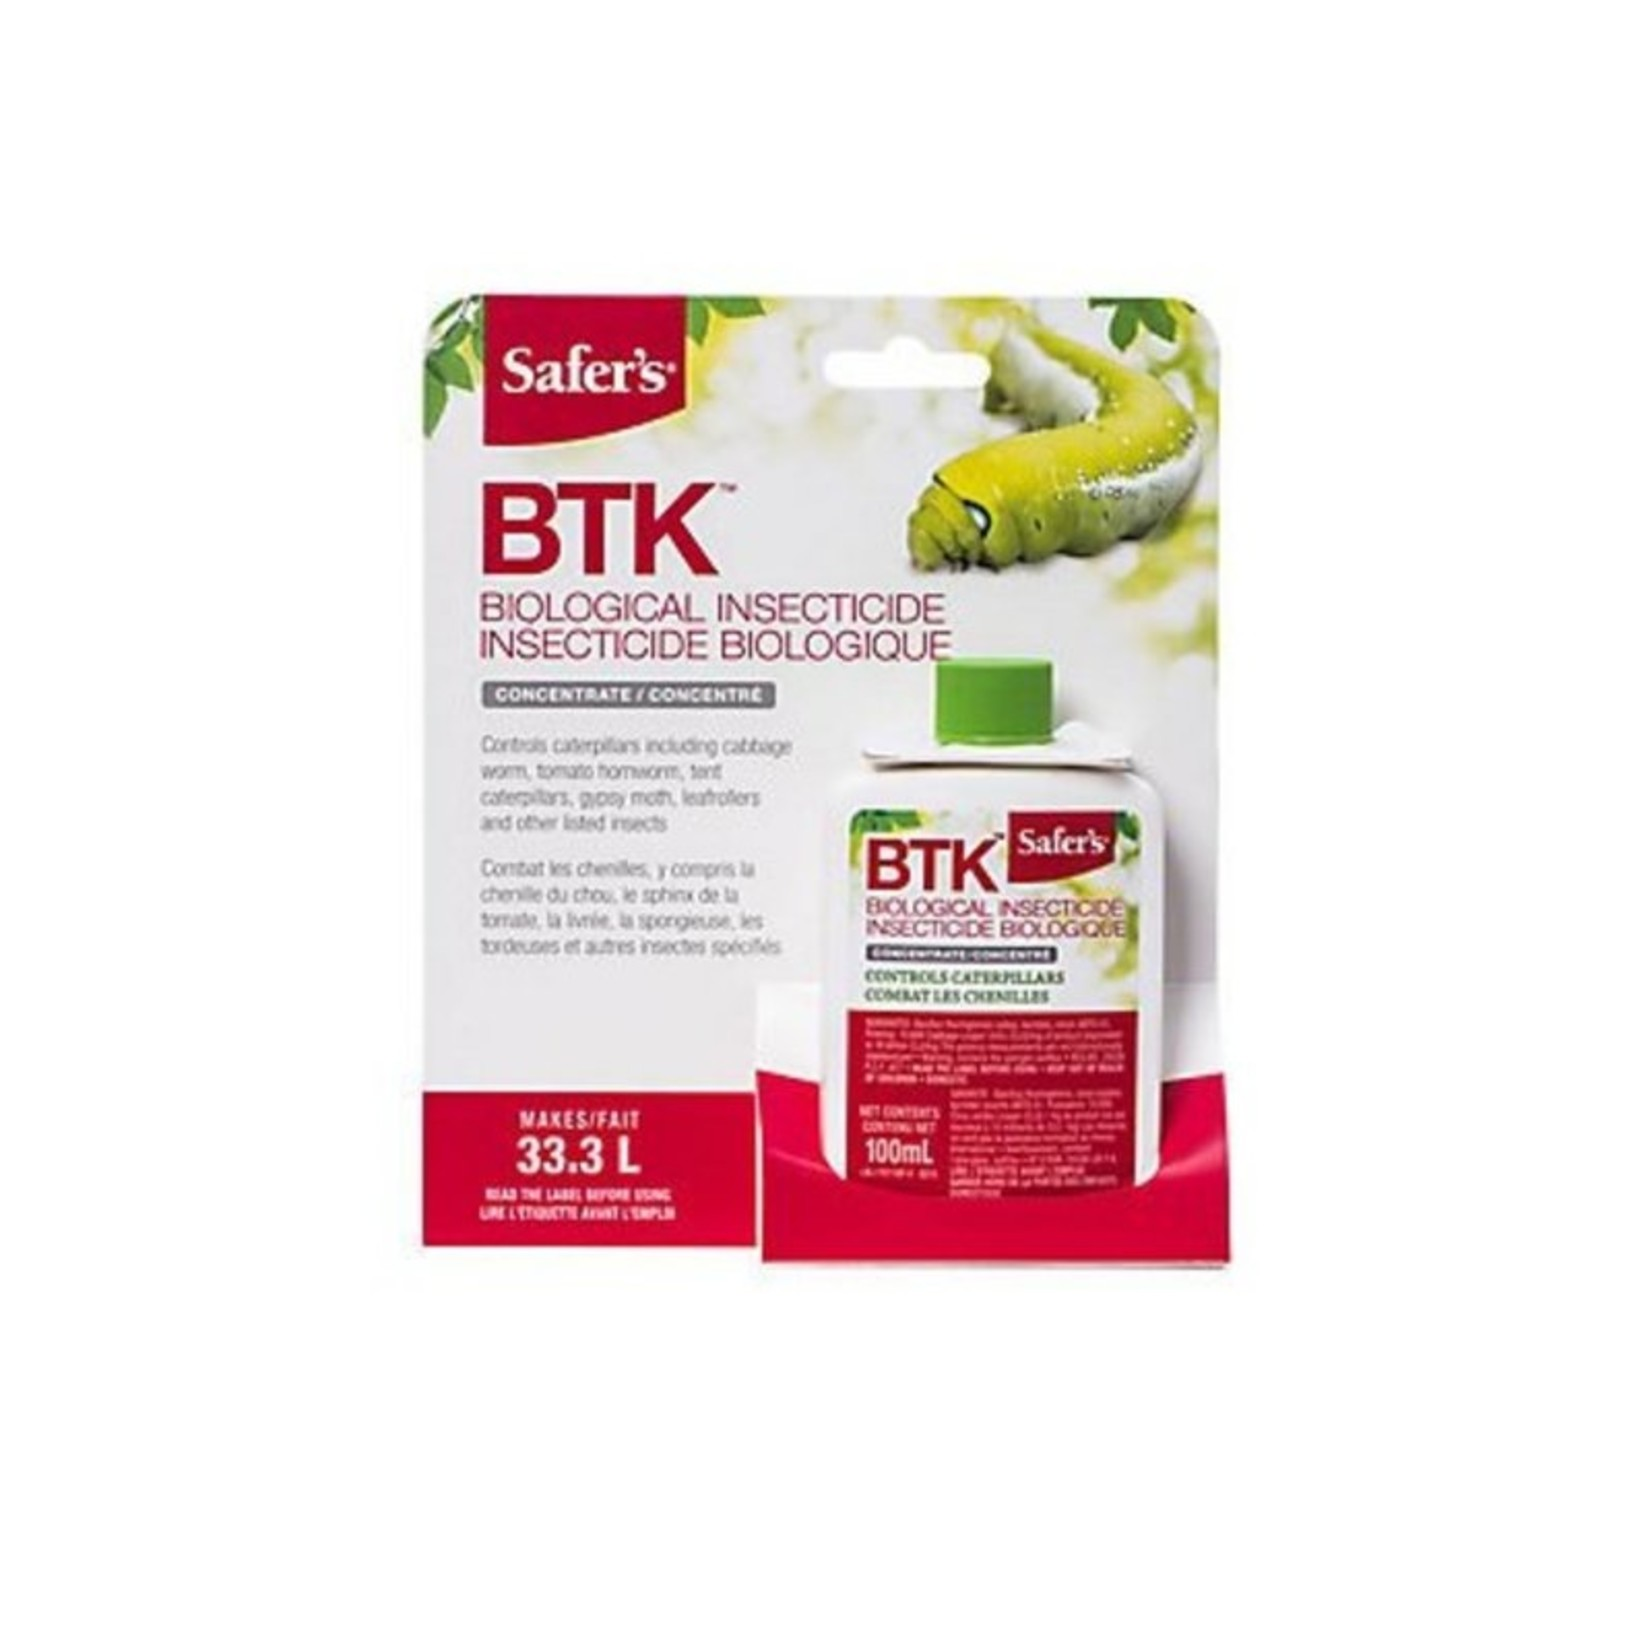 Safer's 100ml BTK INSECTICIDE CONC